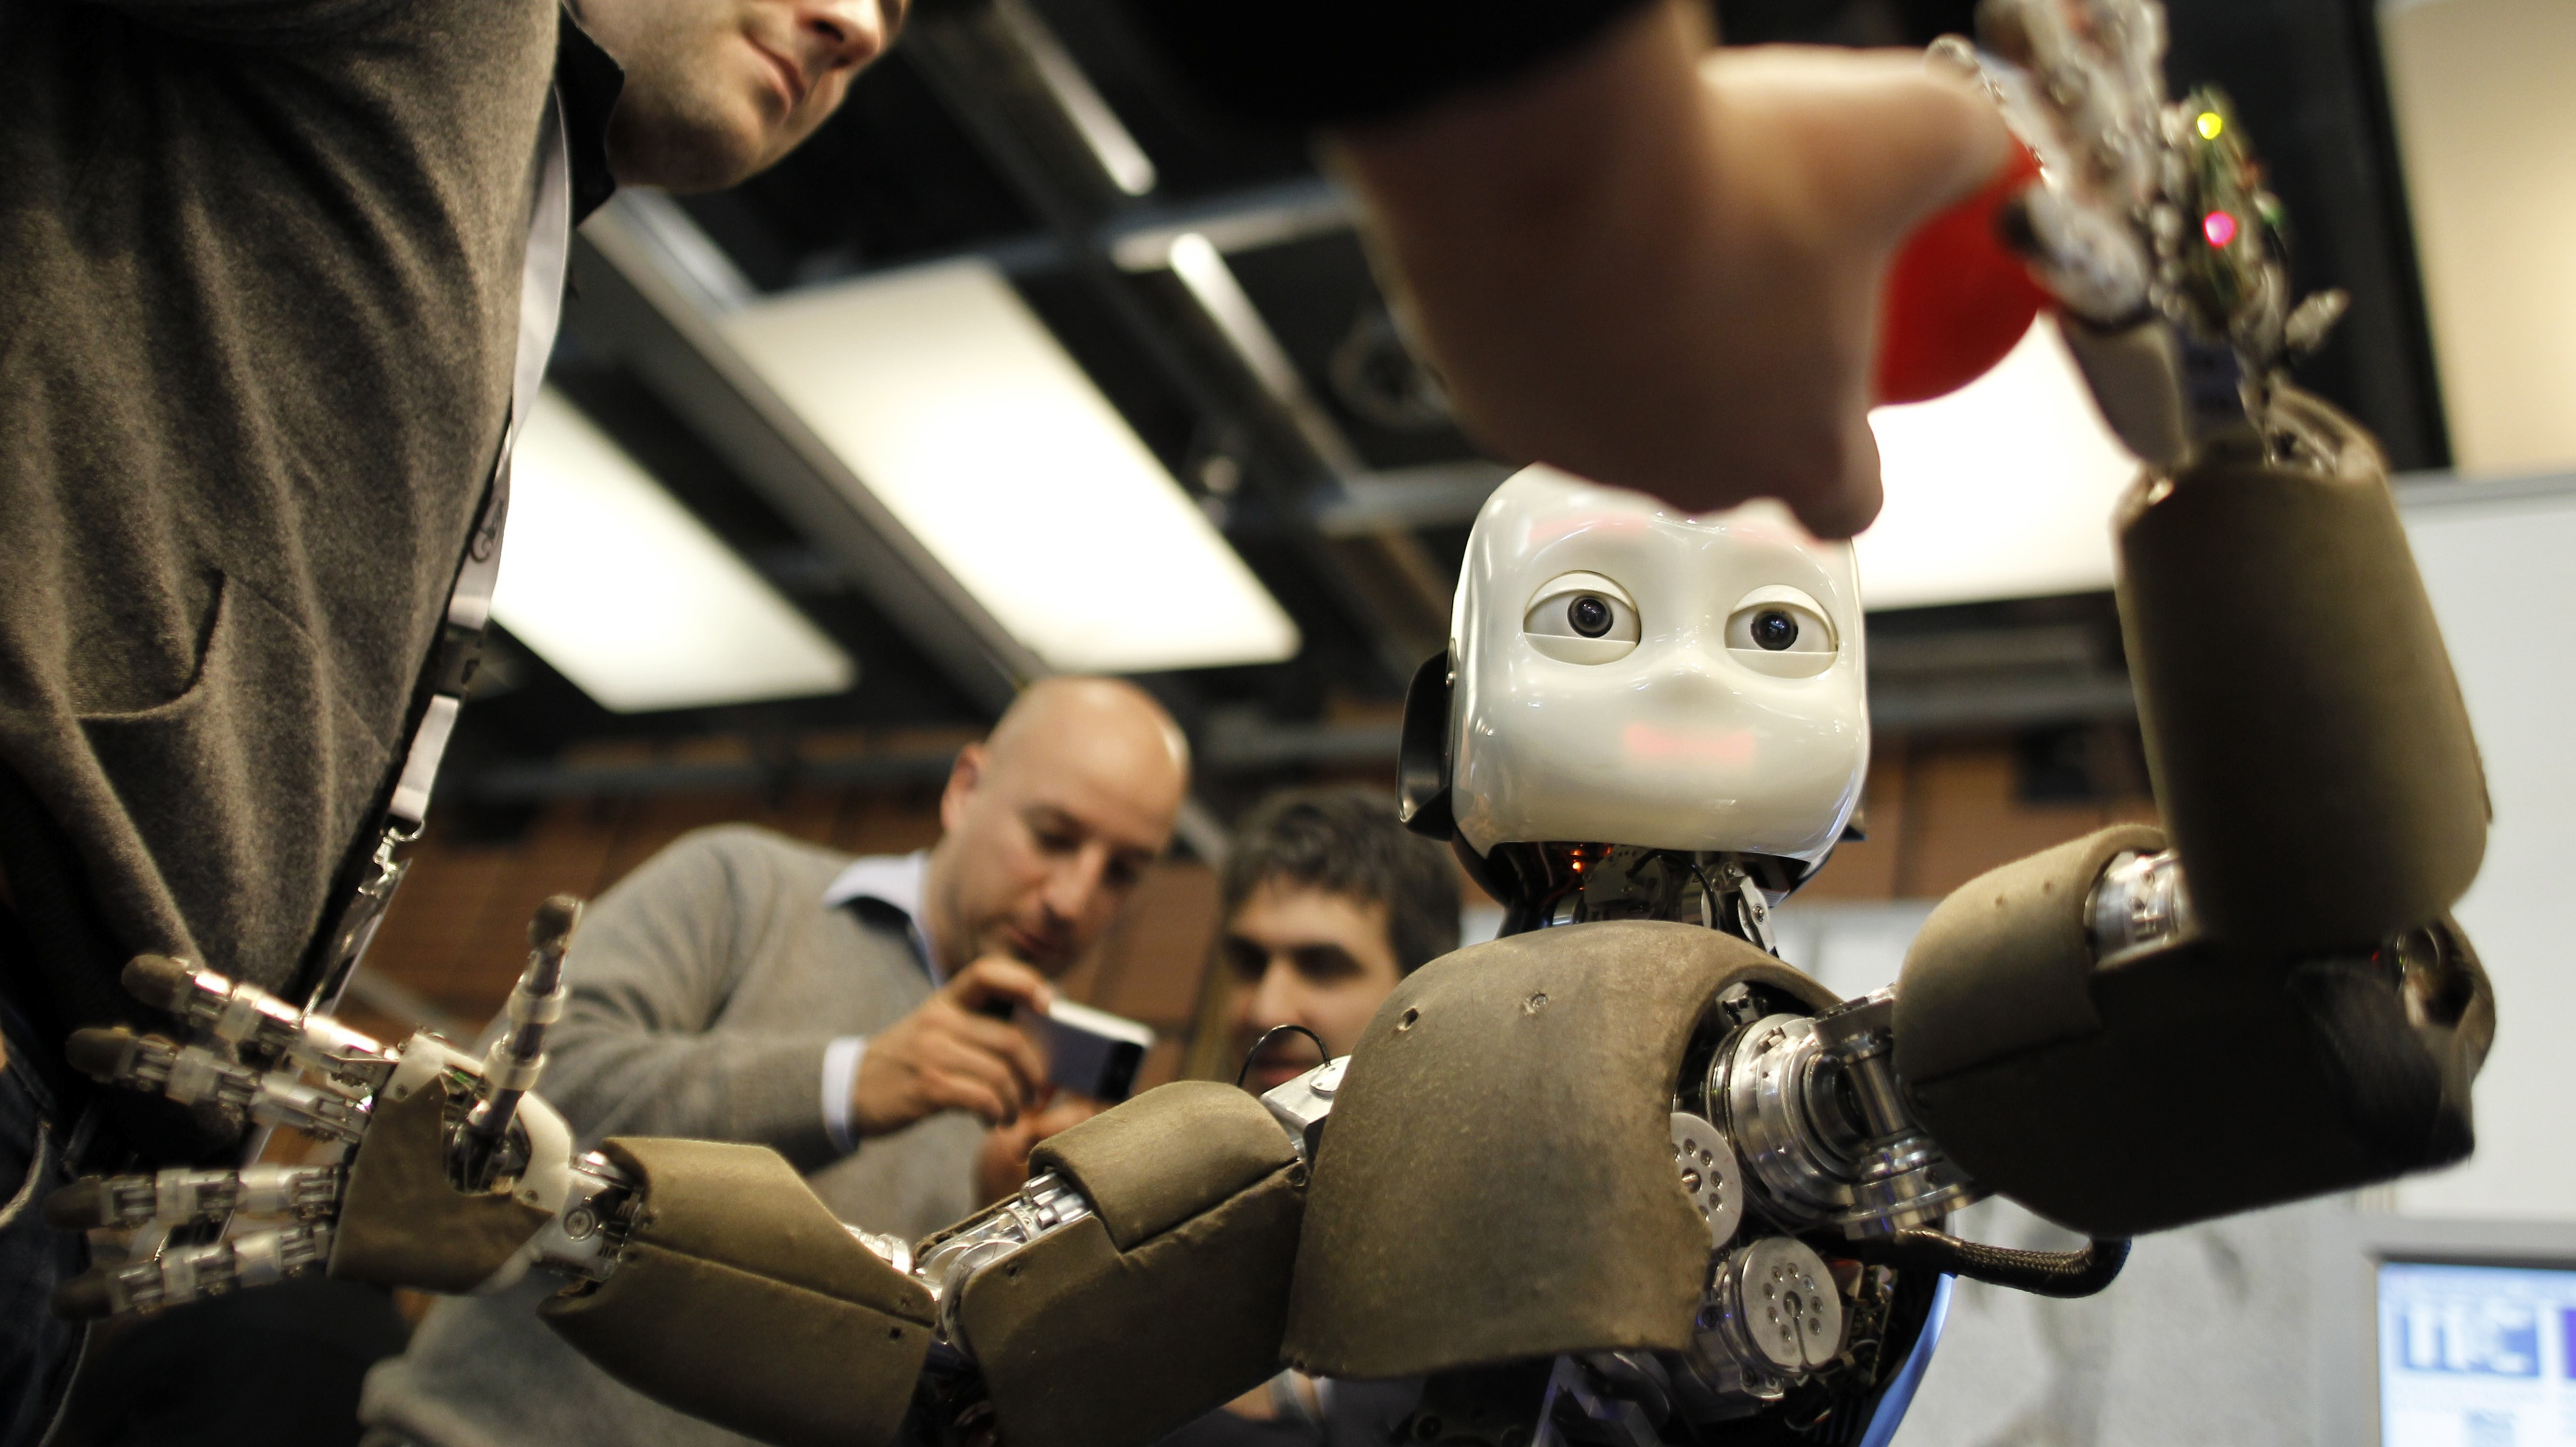 People look at the iCub robot during the Innorobo European summit, an event dedicated to the service robotics industry, in Lyon, central France, Thursday, March 15, 2012. The iCub robot, created by the Italian Institute of Technology, is used for research into human cognition and artificial intelligence. (AP Photo/Laurent Cipriani)